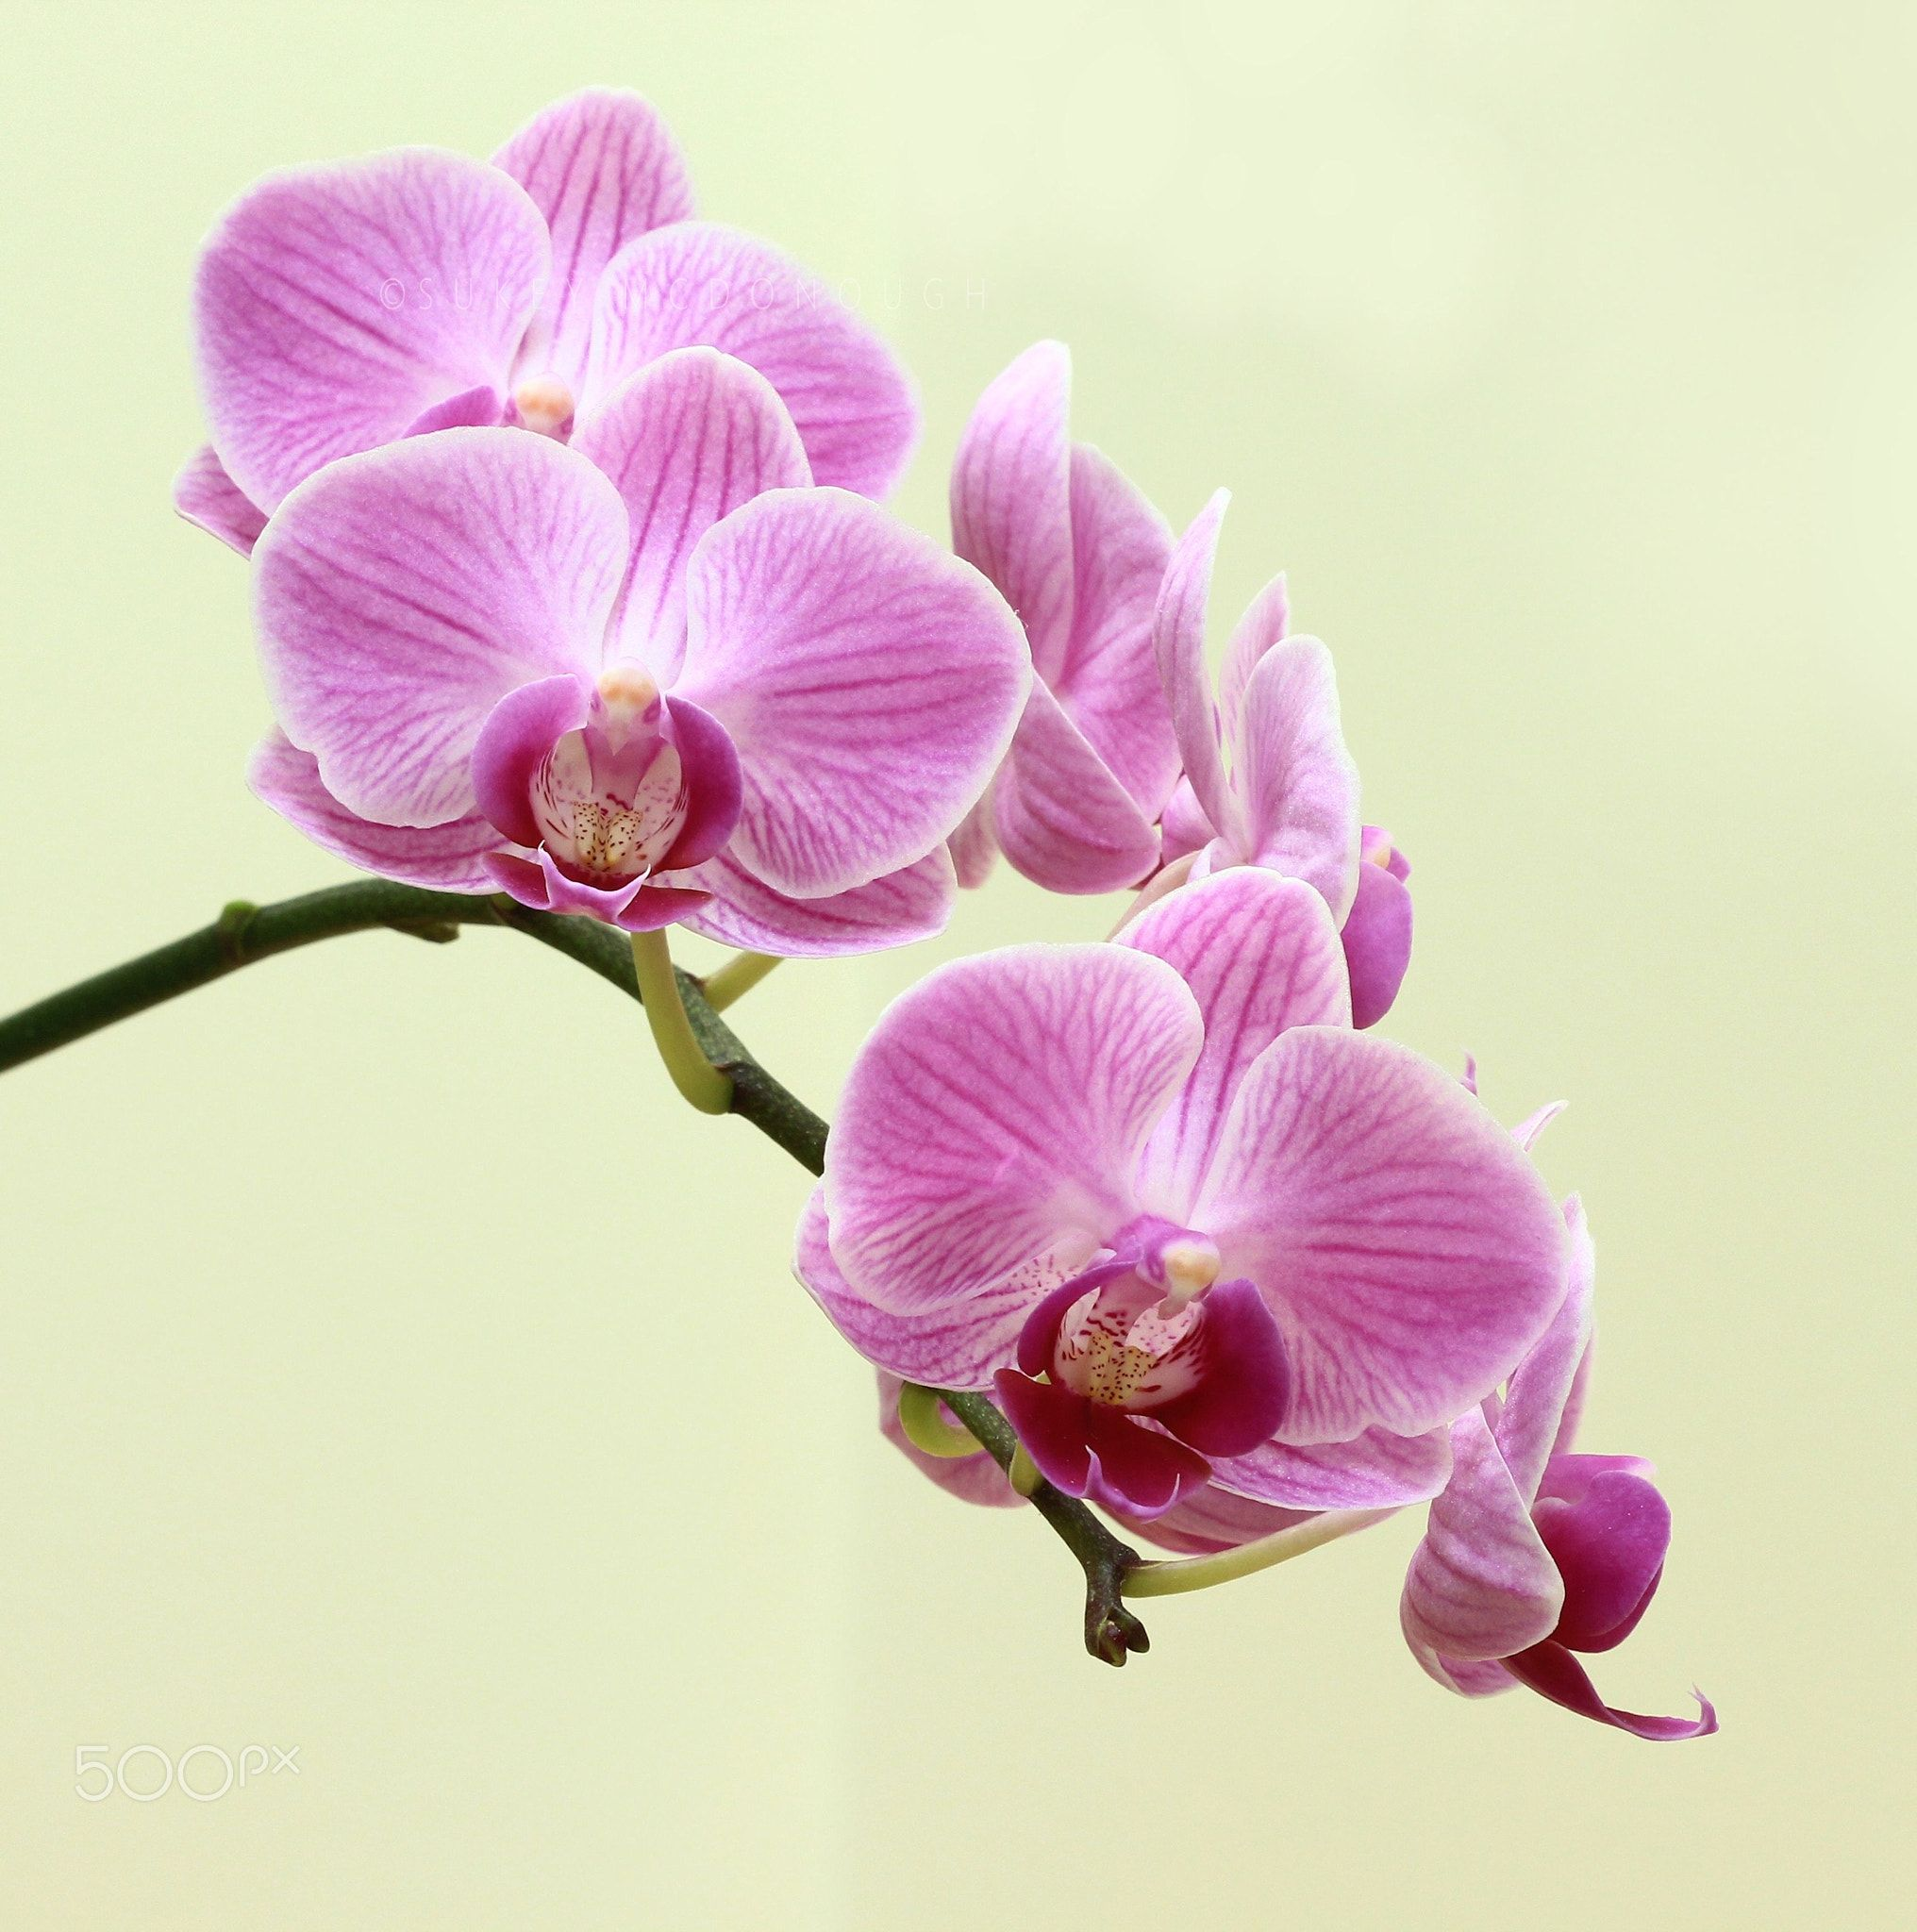 More Blooms And Buds A Little Mini Orchid That Brightens The Room And Brightens Our Day Sue Mcd Orchid Photography Orchids Flowers Photography